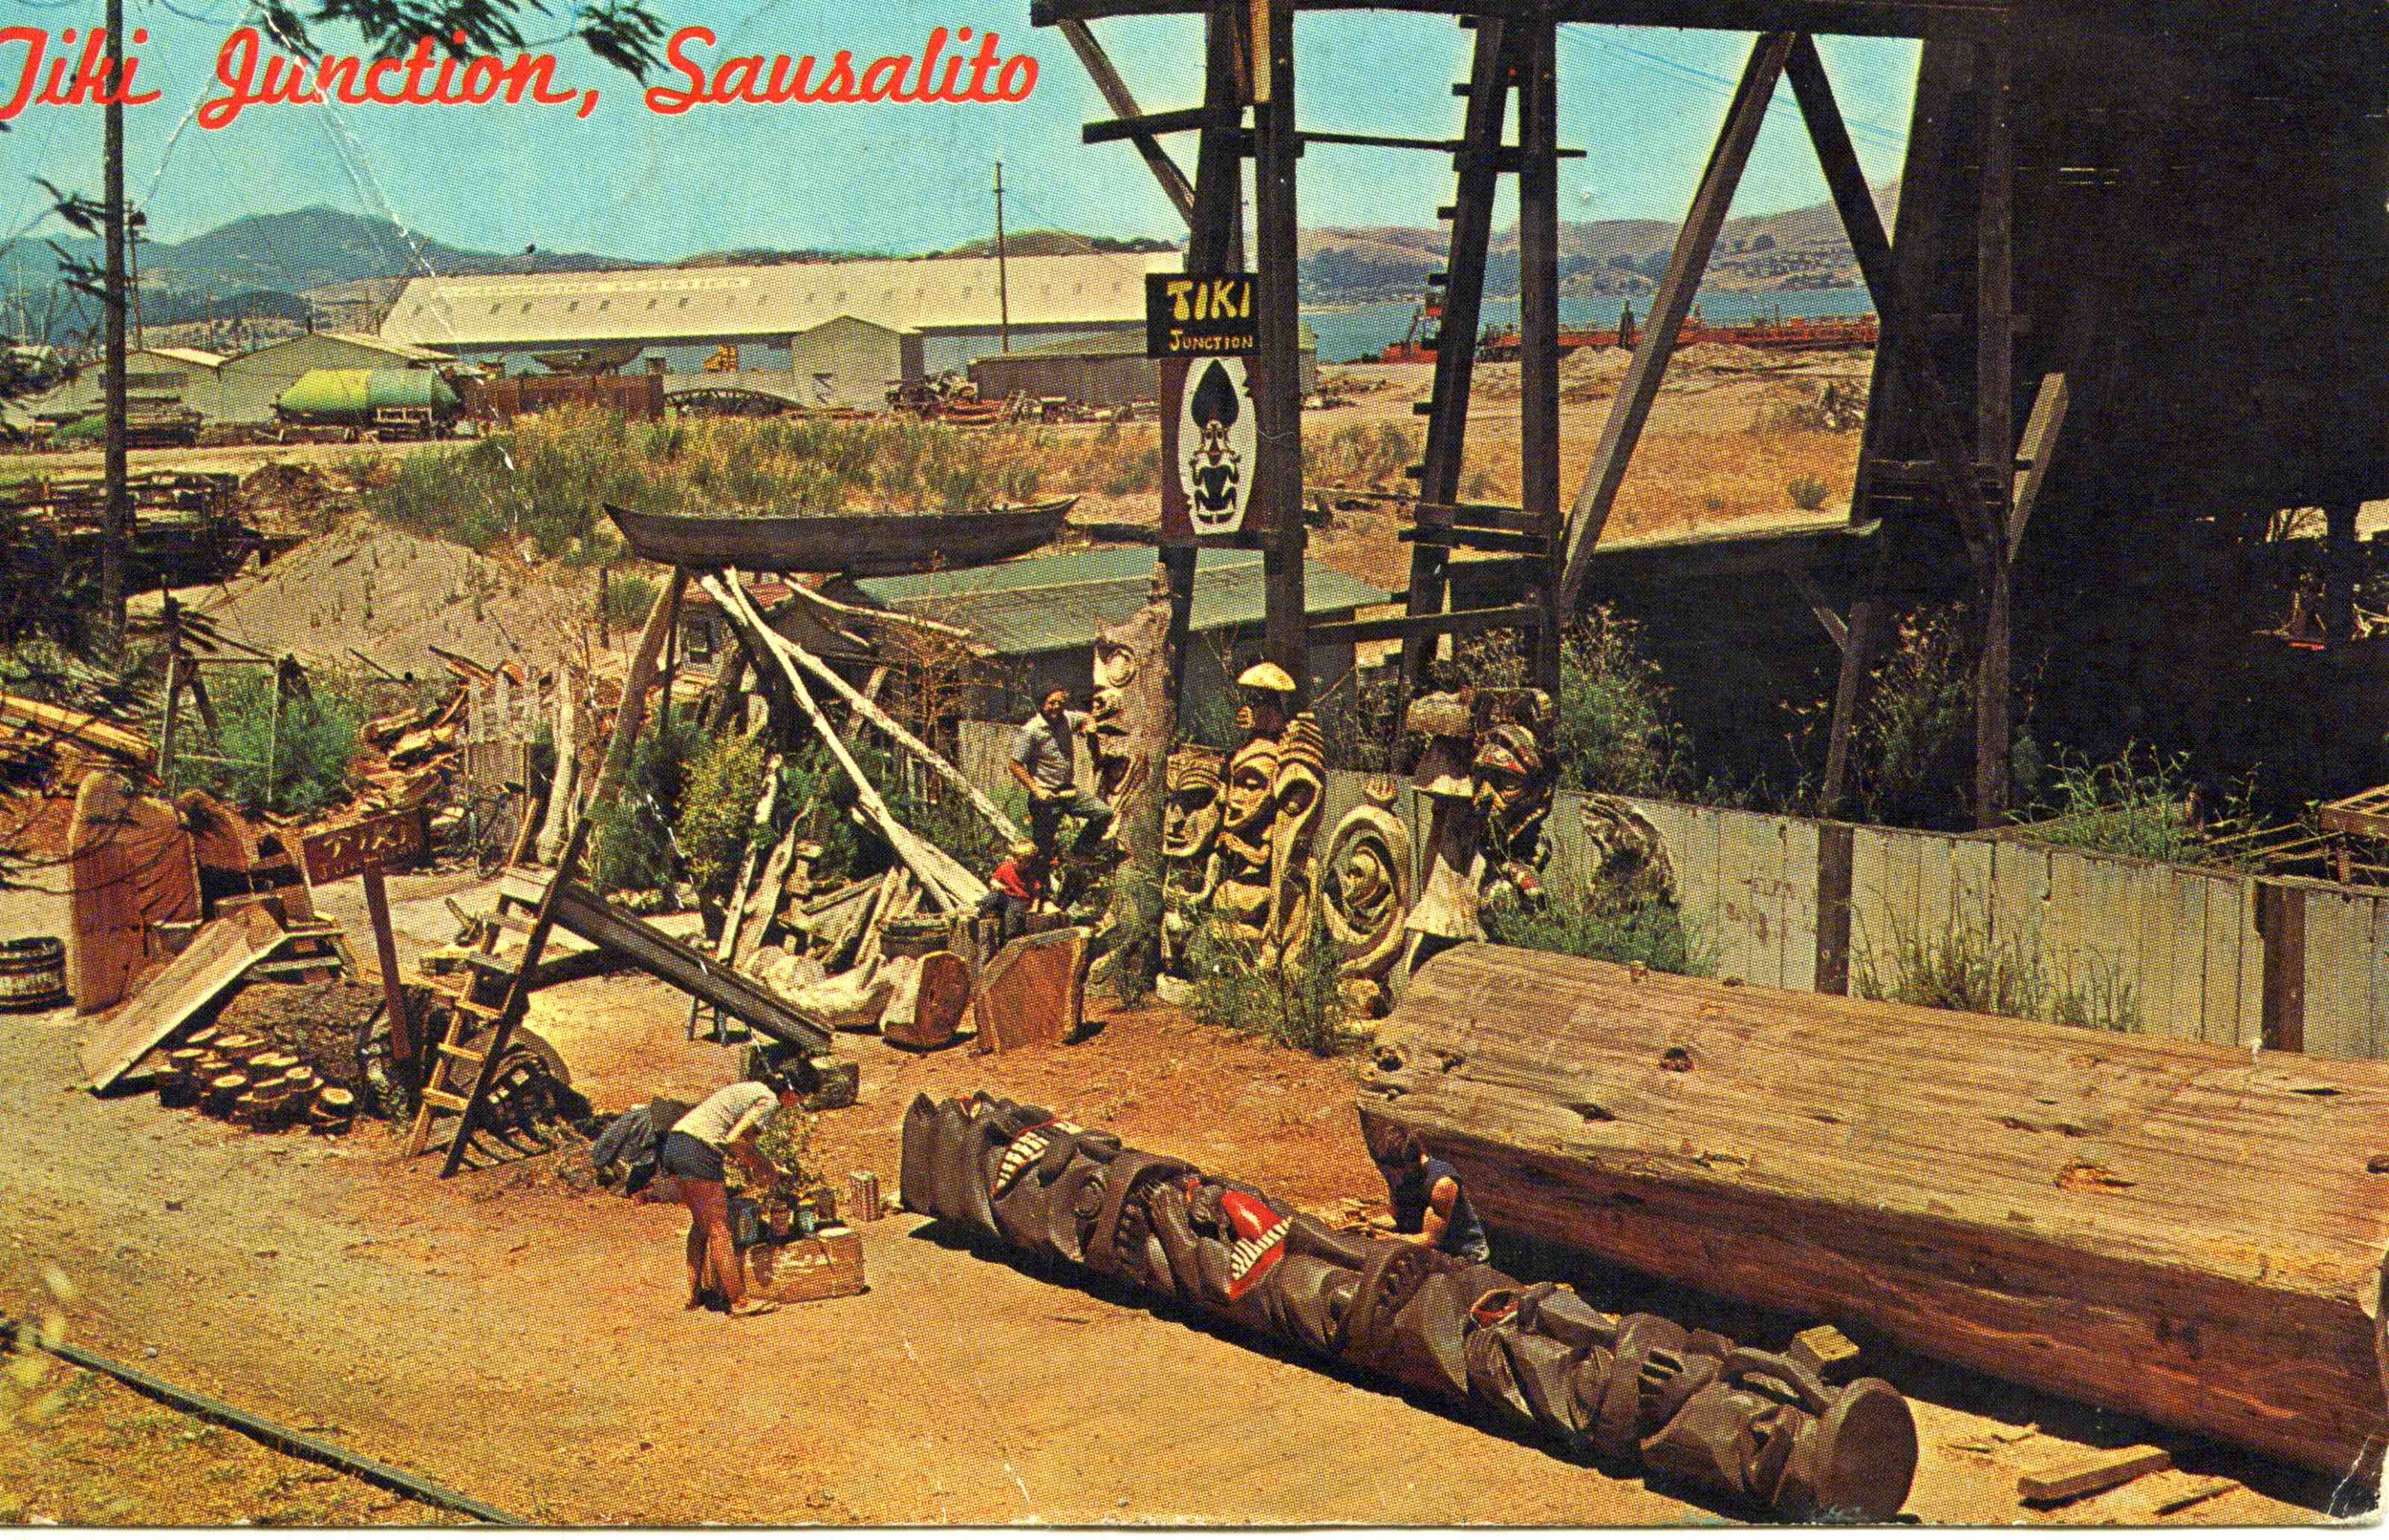 Tiki Junction was so famous, it even had its own postards. Photo courtesy ofSausalito Historical Society